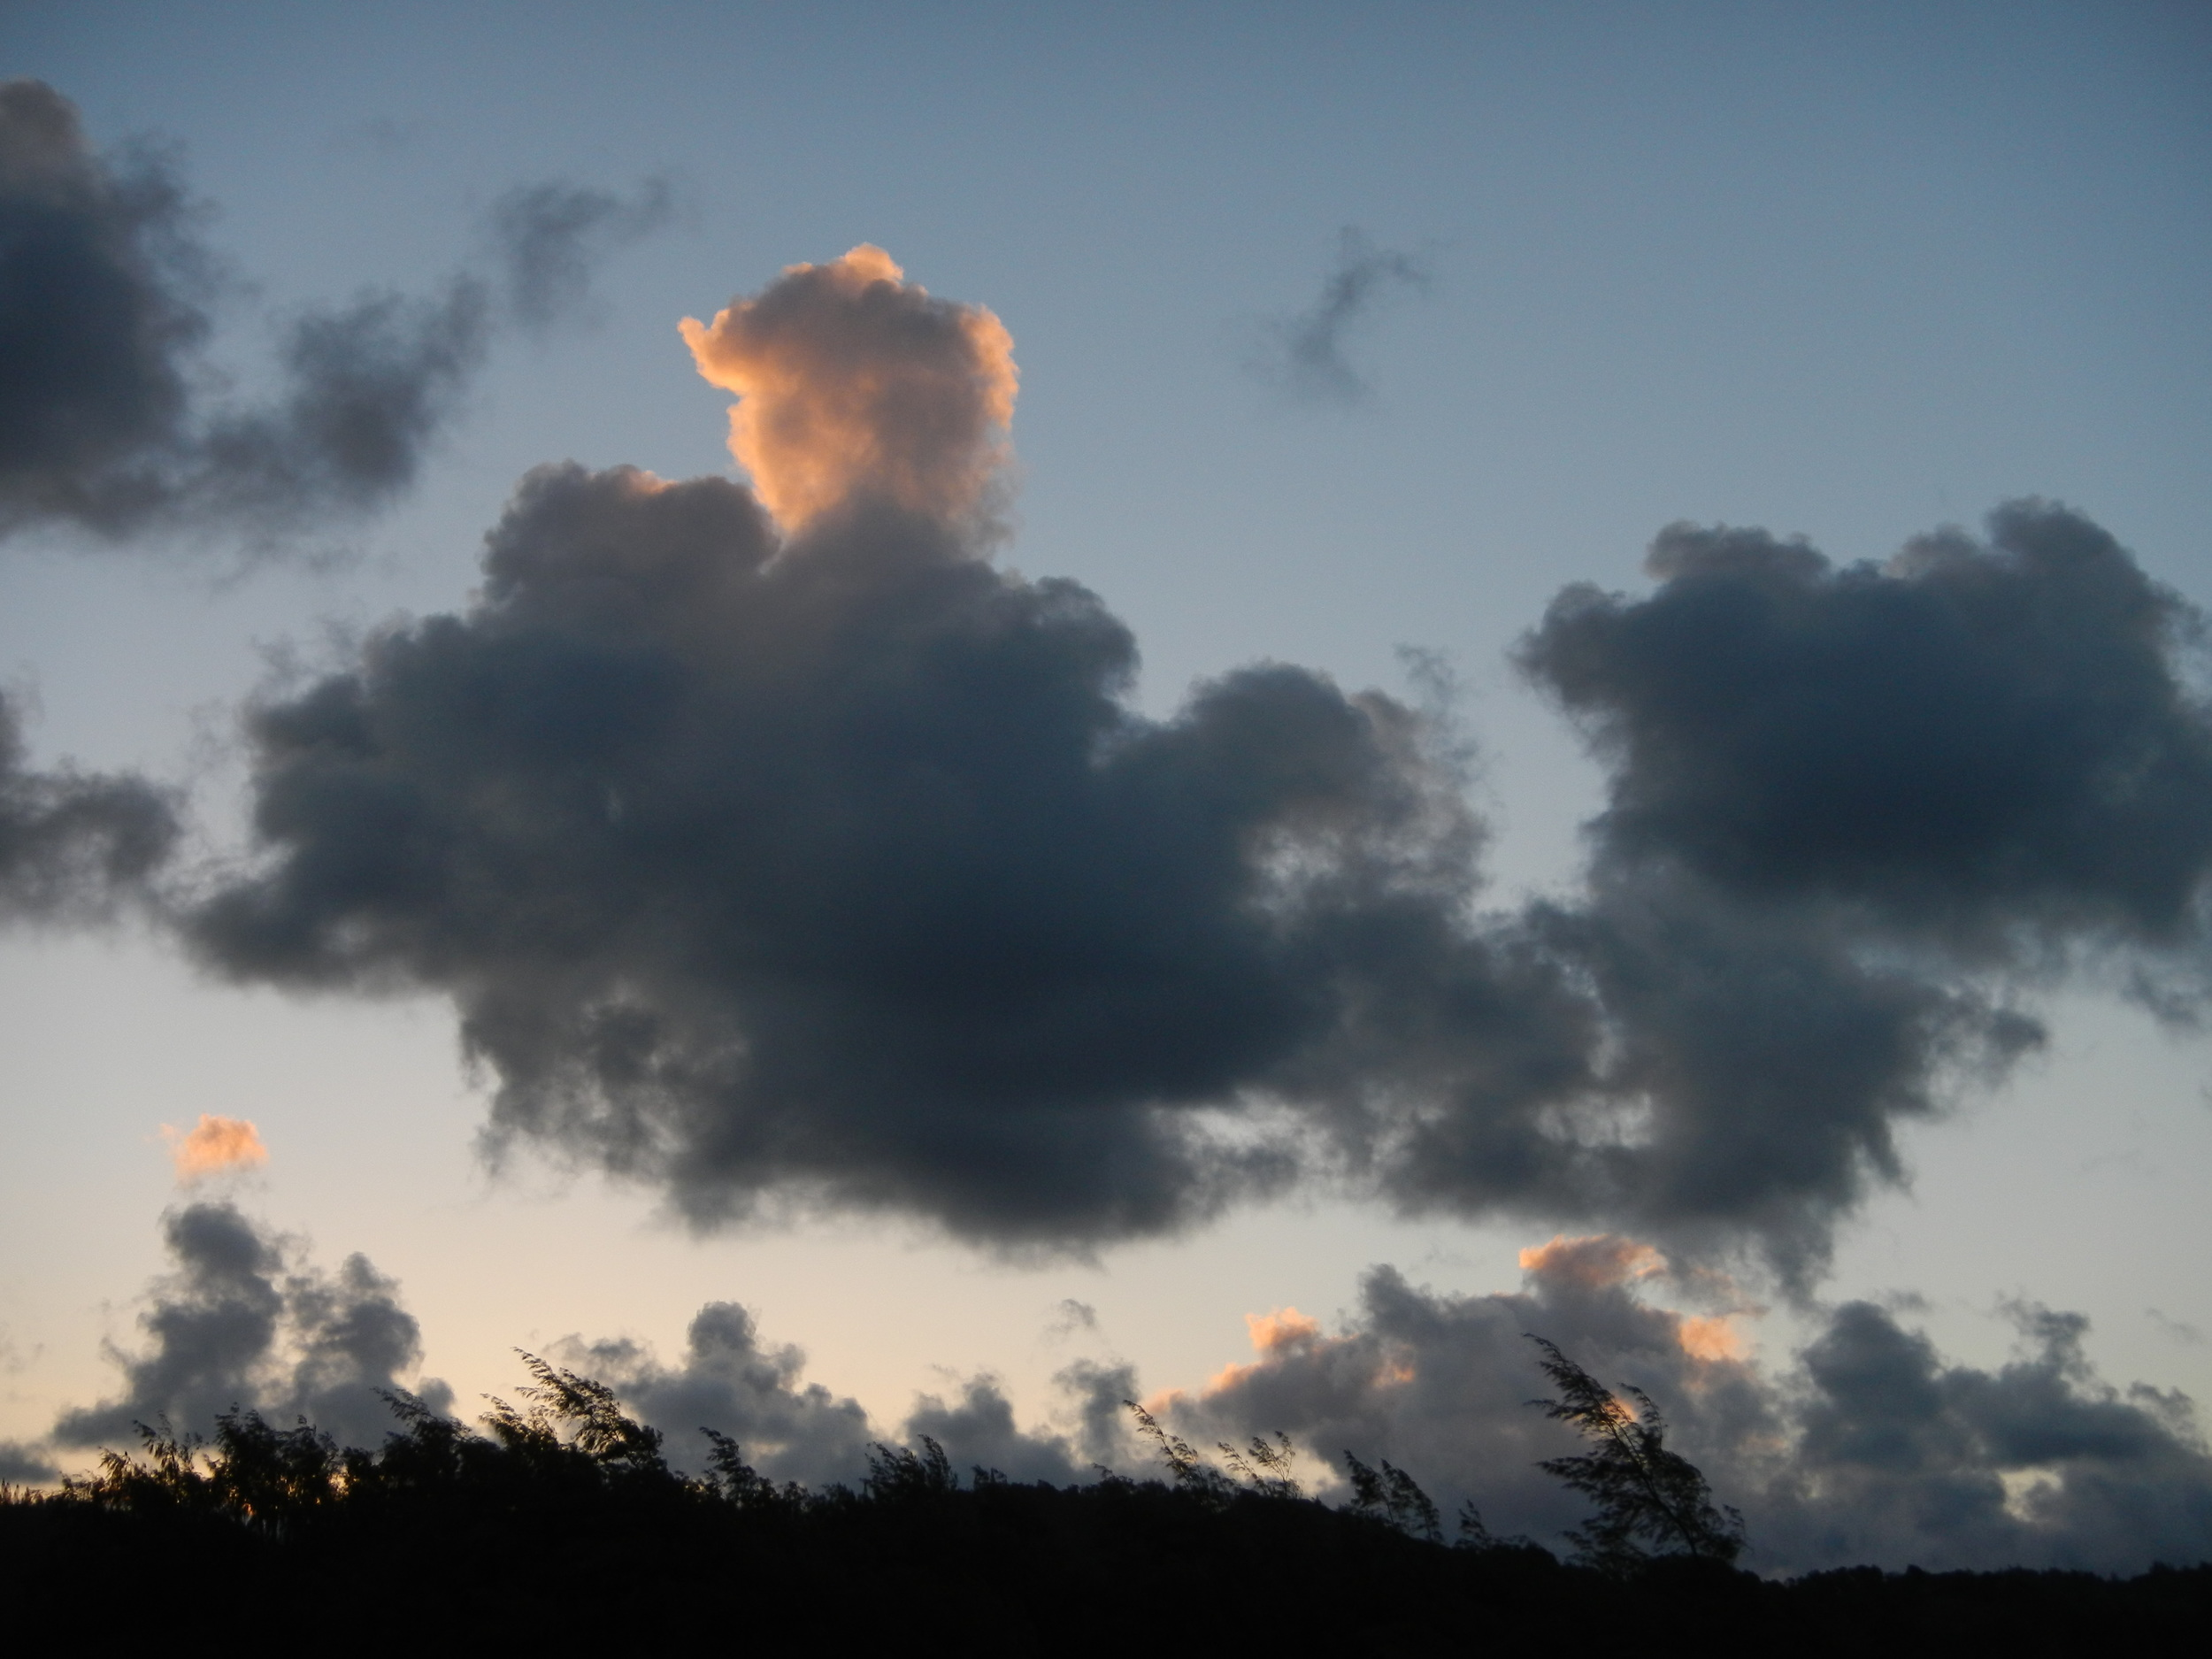 LIke the way the setting sun is hitting the top of the cloud